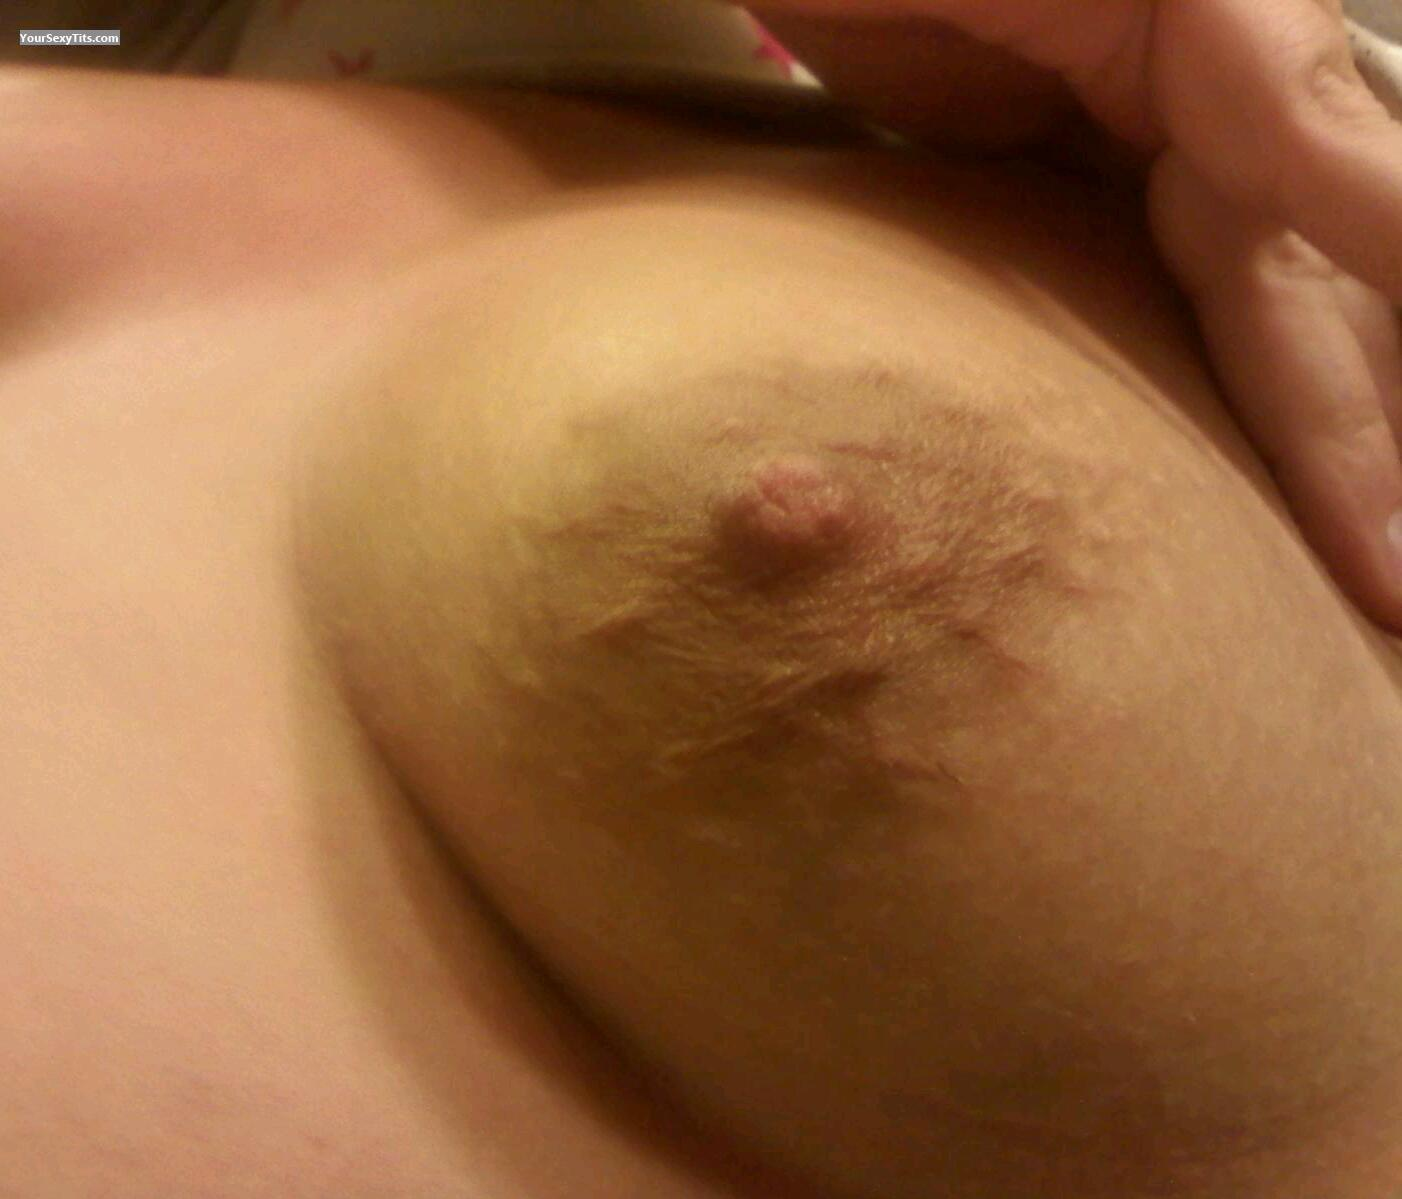 Tit Flash: My Small Tits (Selfie) - Fun from United StatesPierced Nipples